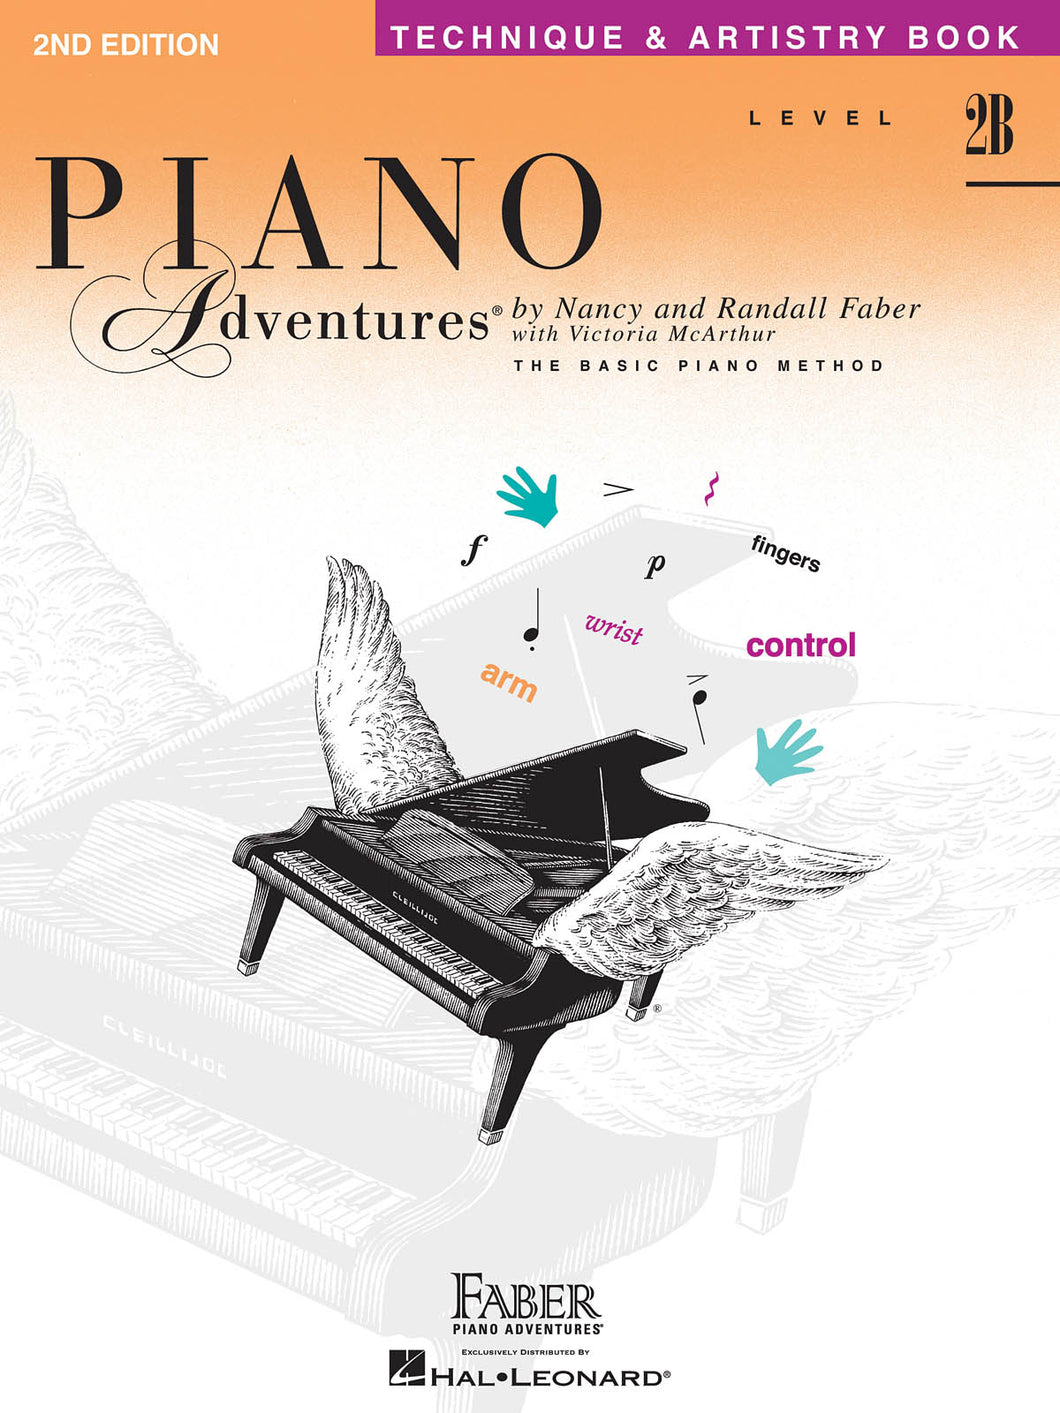 Faber Piano Adventures Technique & Artistry 2B